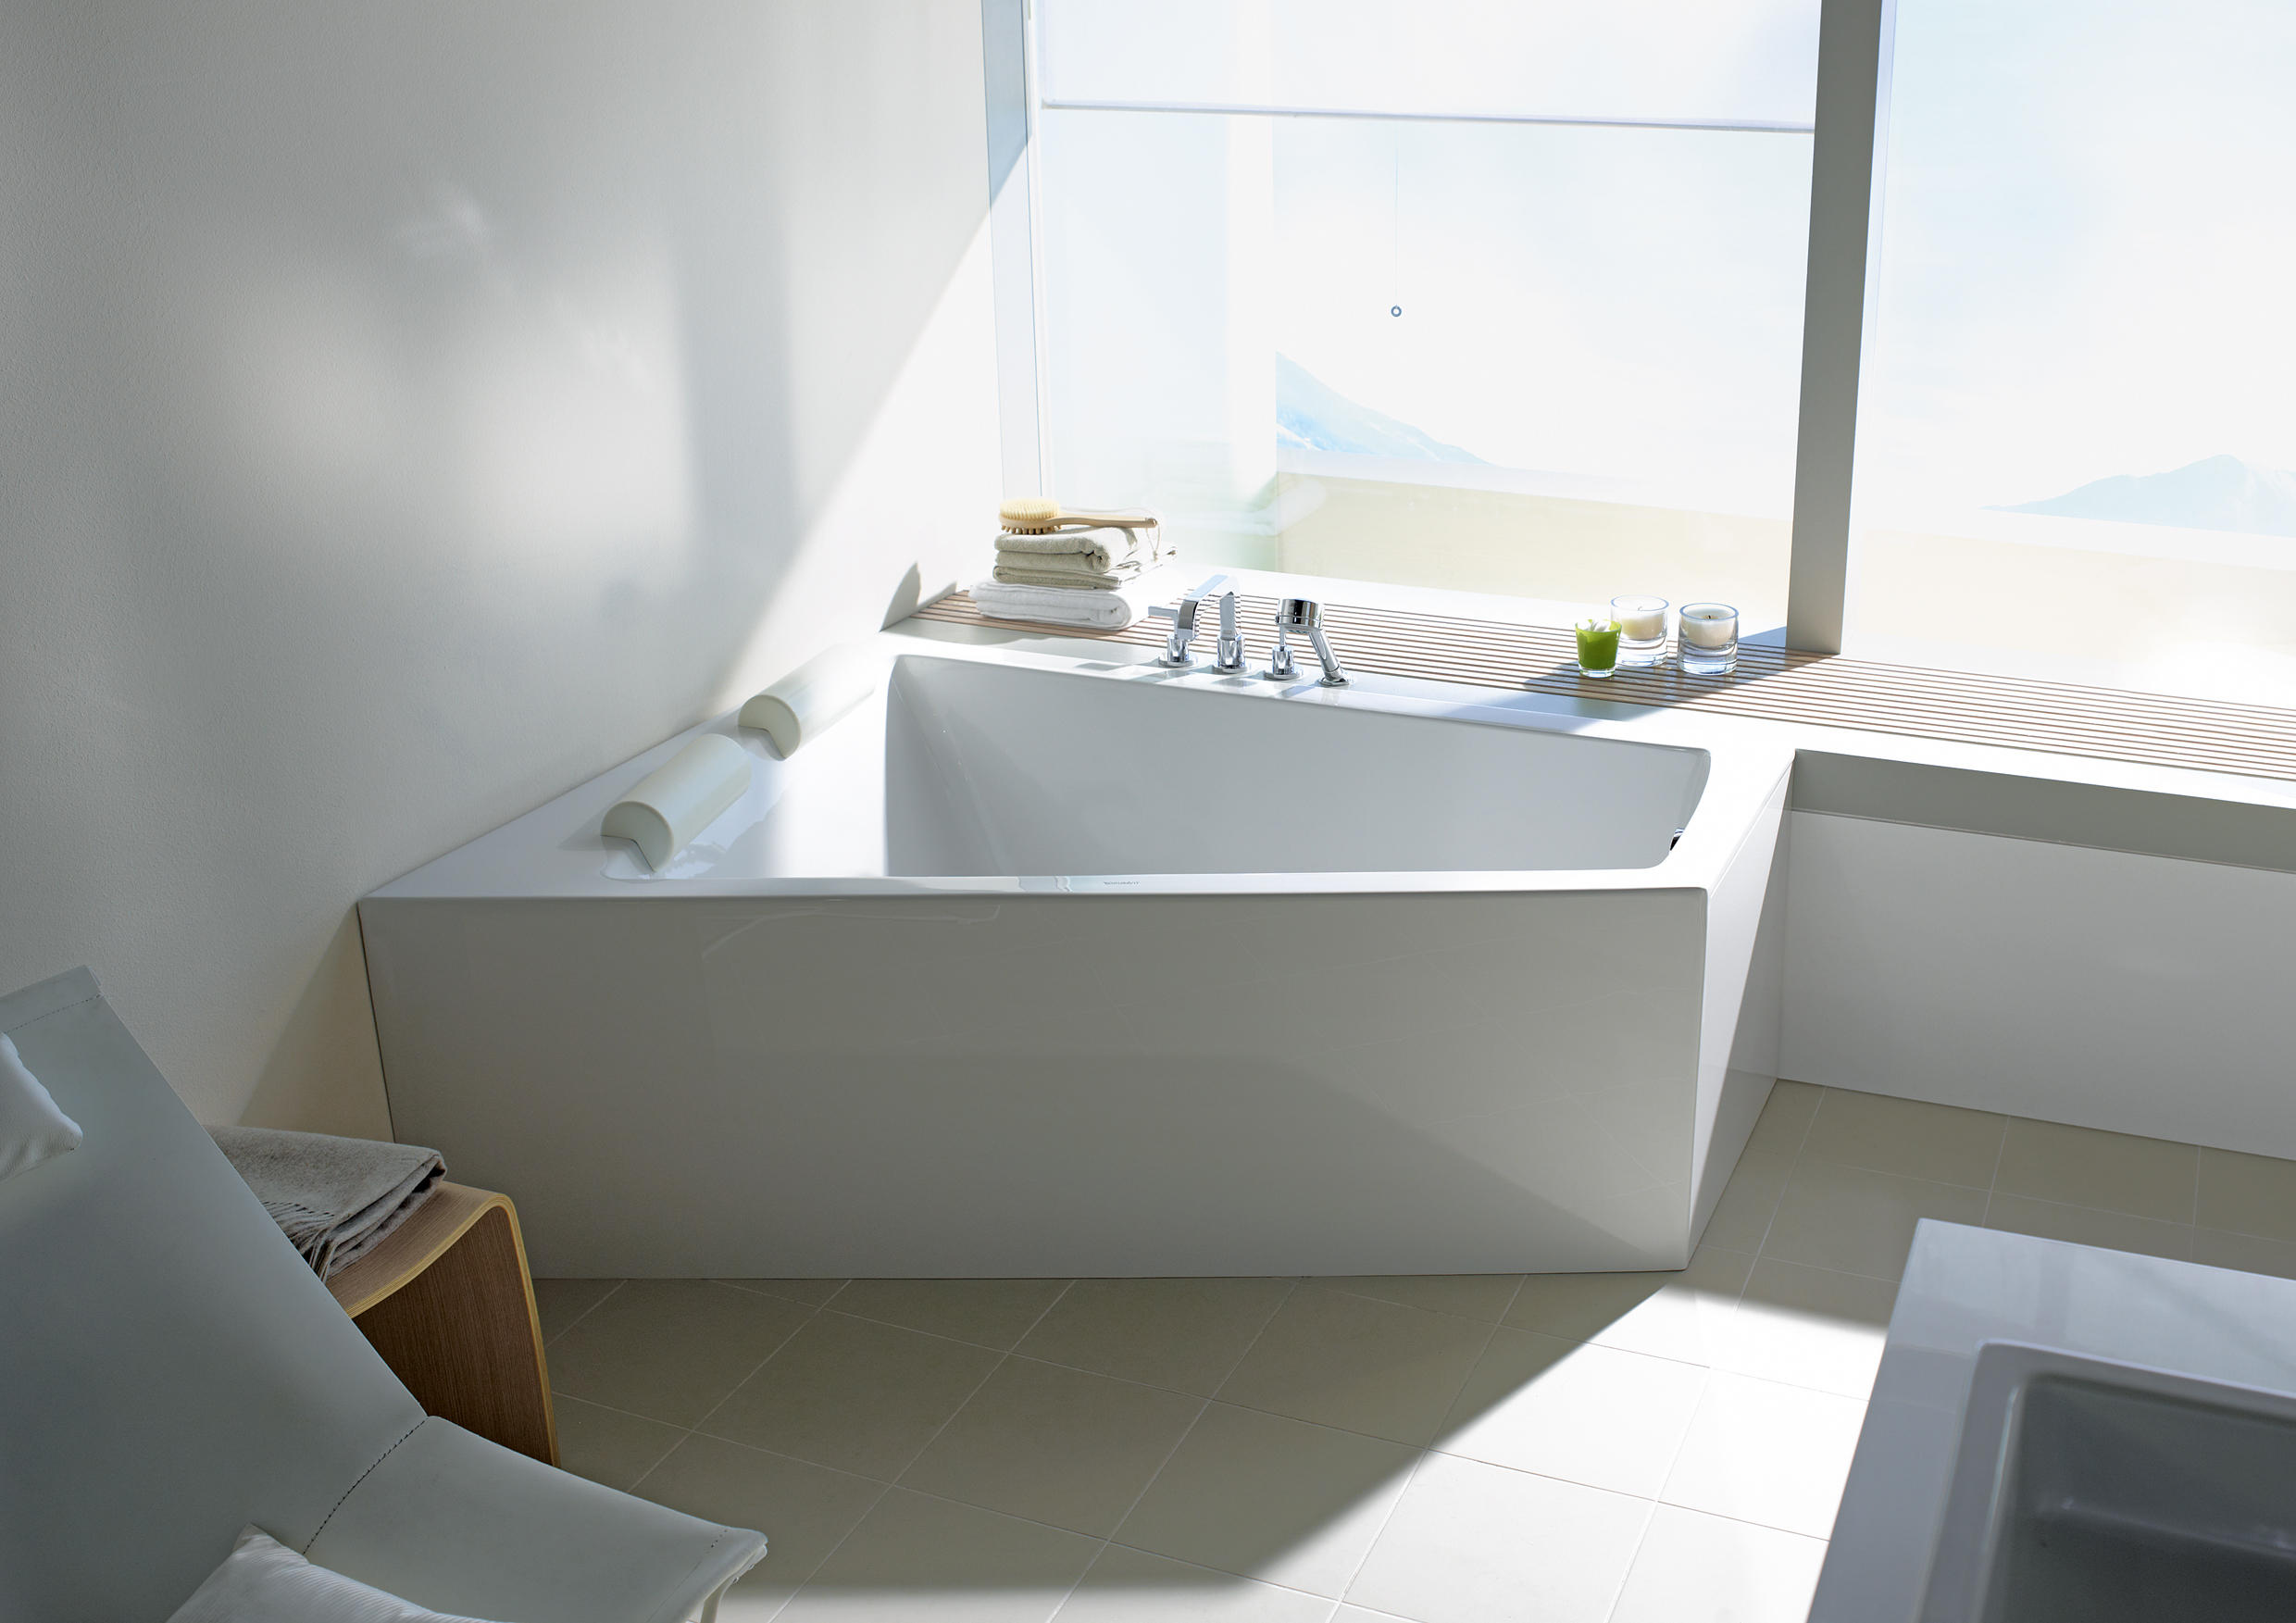 PAIOVA - BATHTUB - Bathtubs from DURAVIT | Architonic